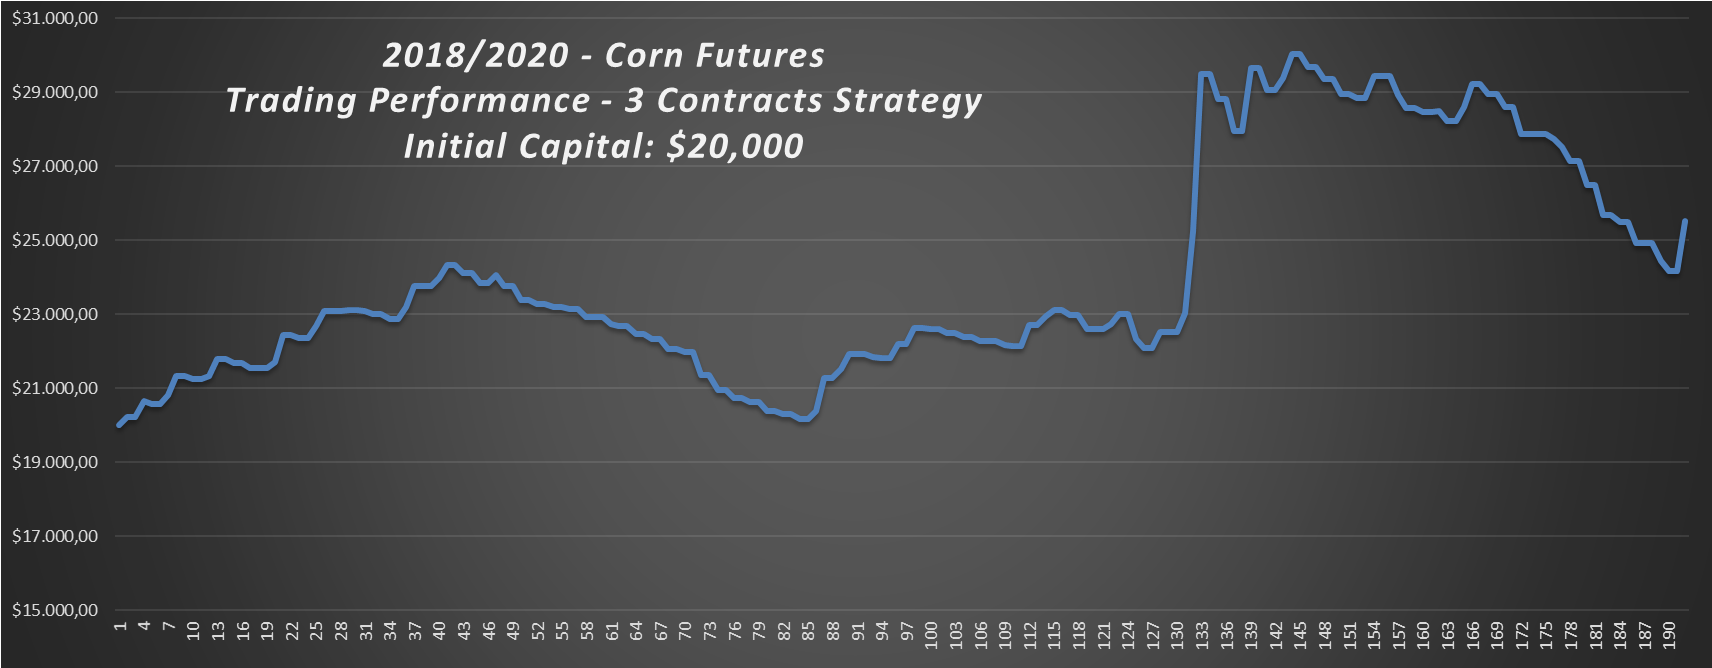 2018-2020-Corn-Trading-Strategy-Performance